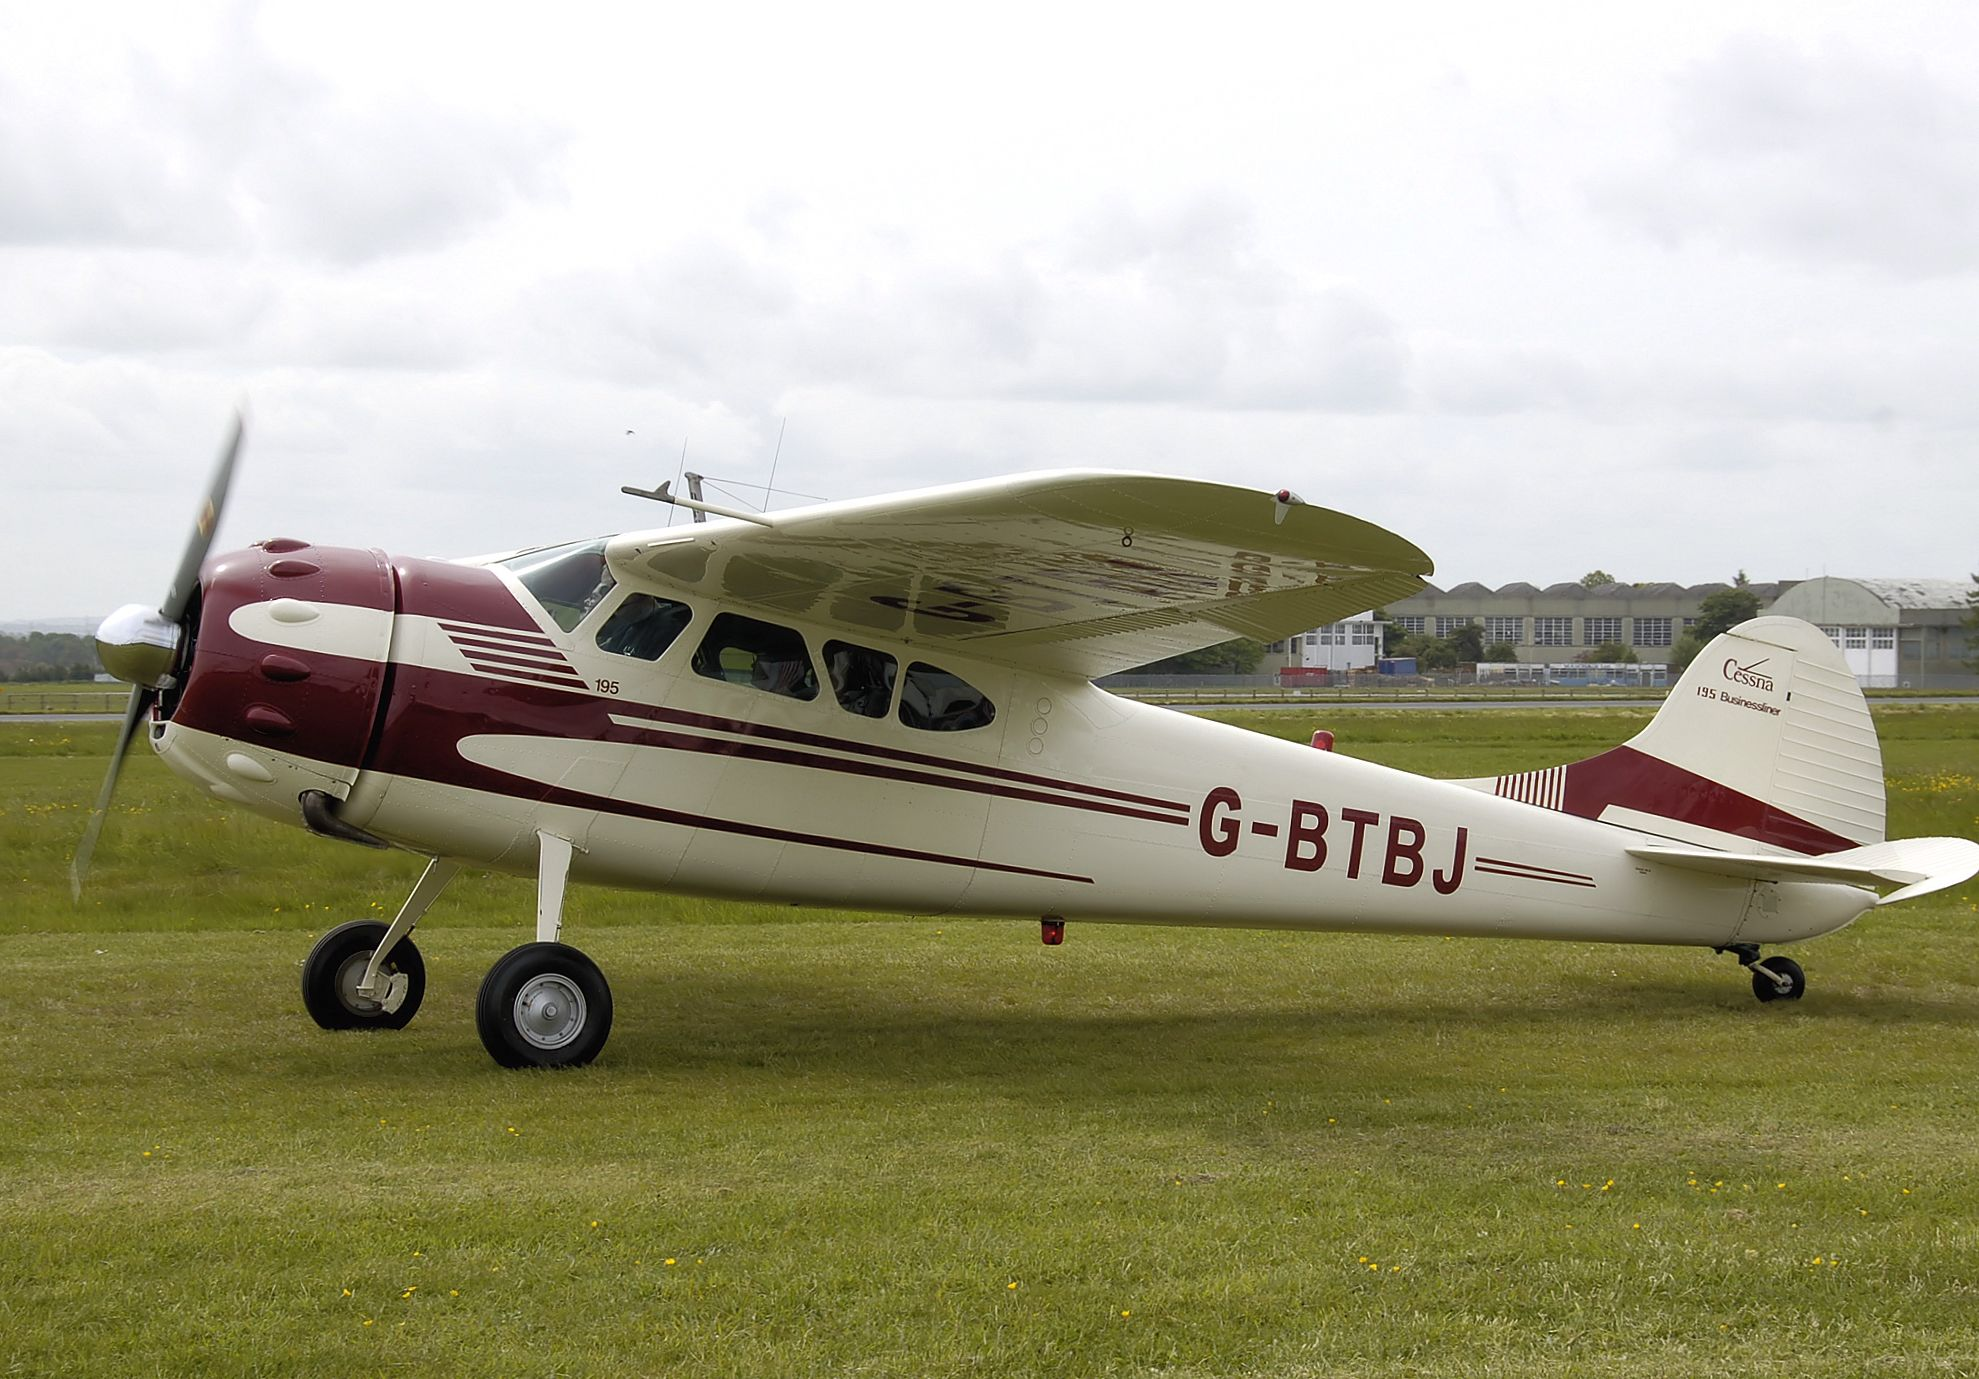 Cessna 195 - Engine Type - Jacobs R-755-A2, 300 hp   Planes